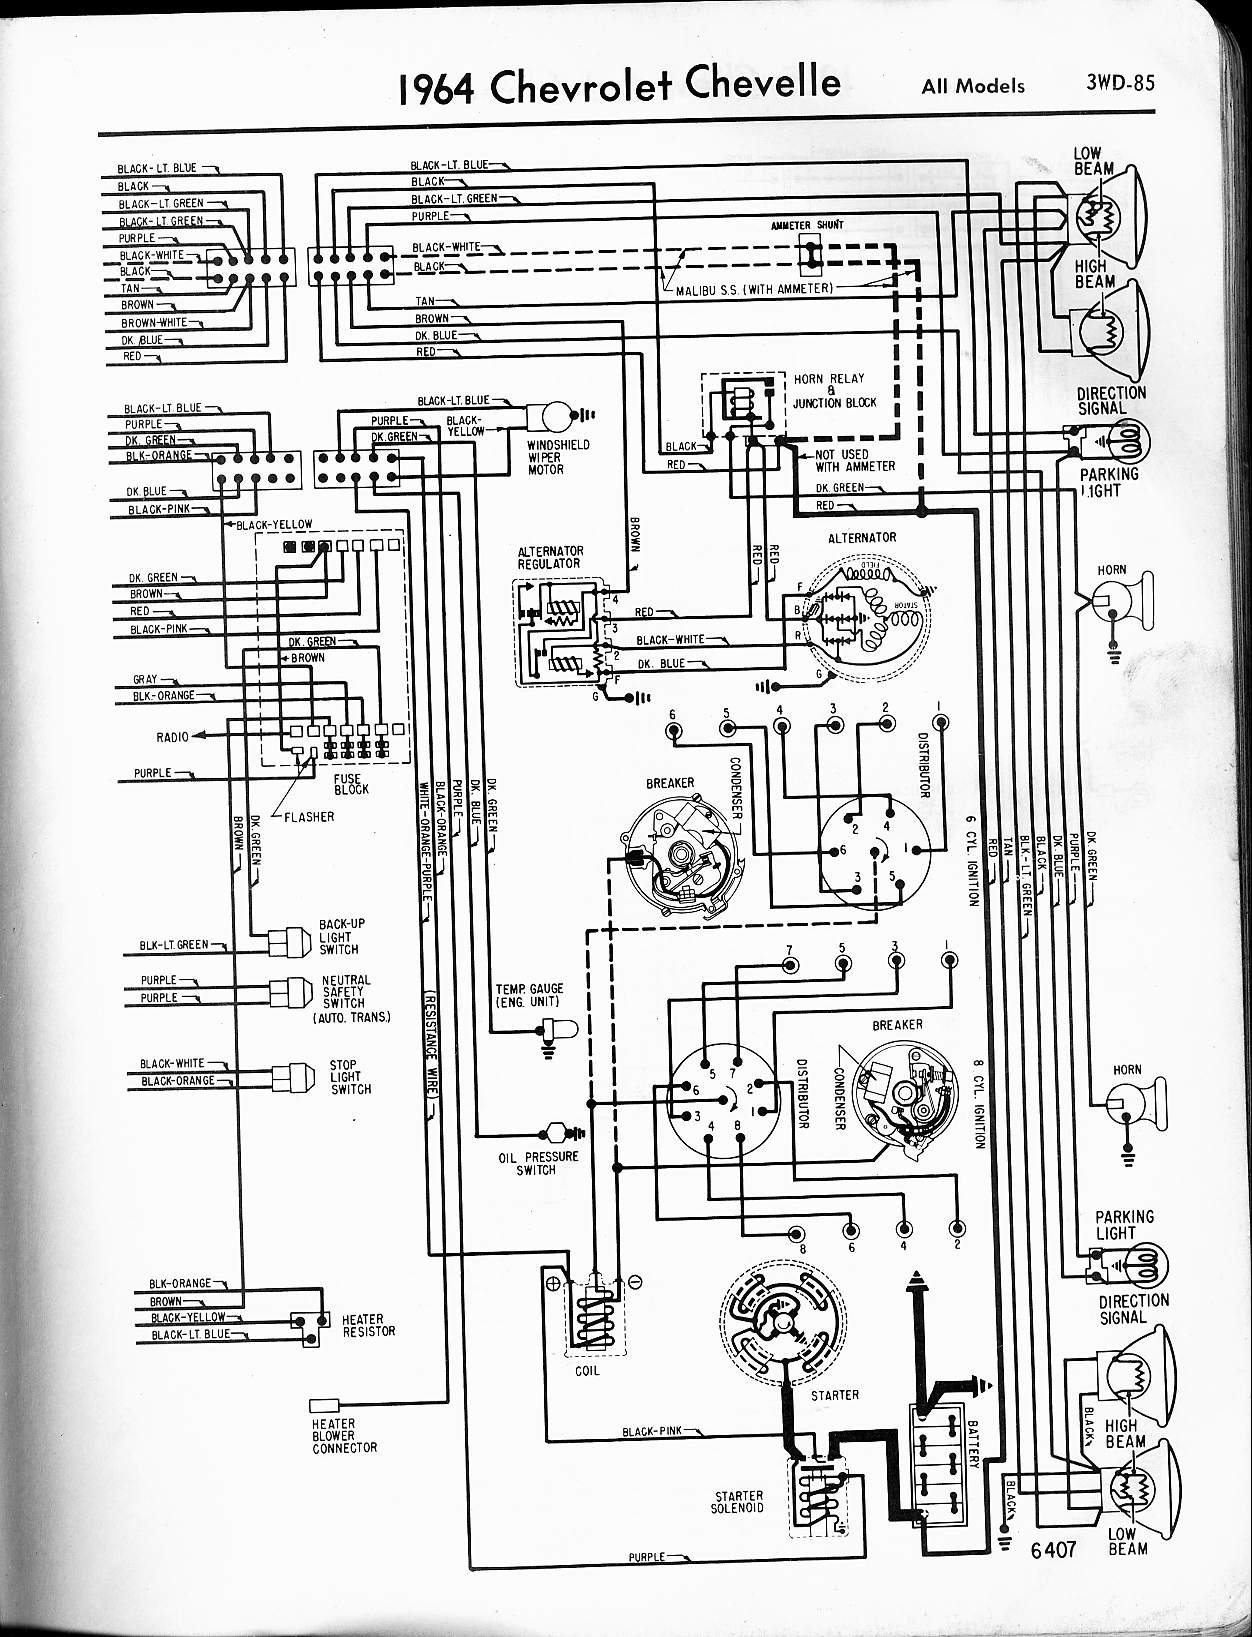 9E13077 1980 Toyota Pickup Fuse Box Diagram | Wiring LibraryWiring Library